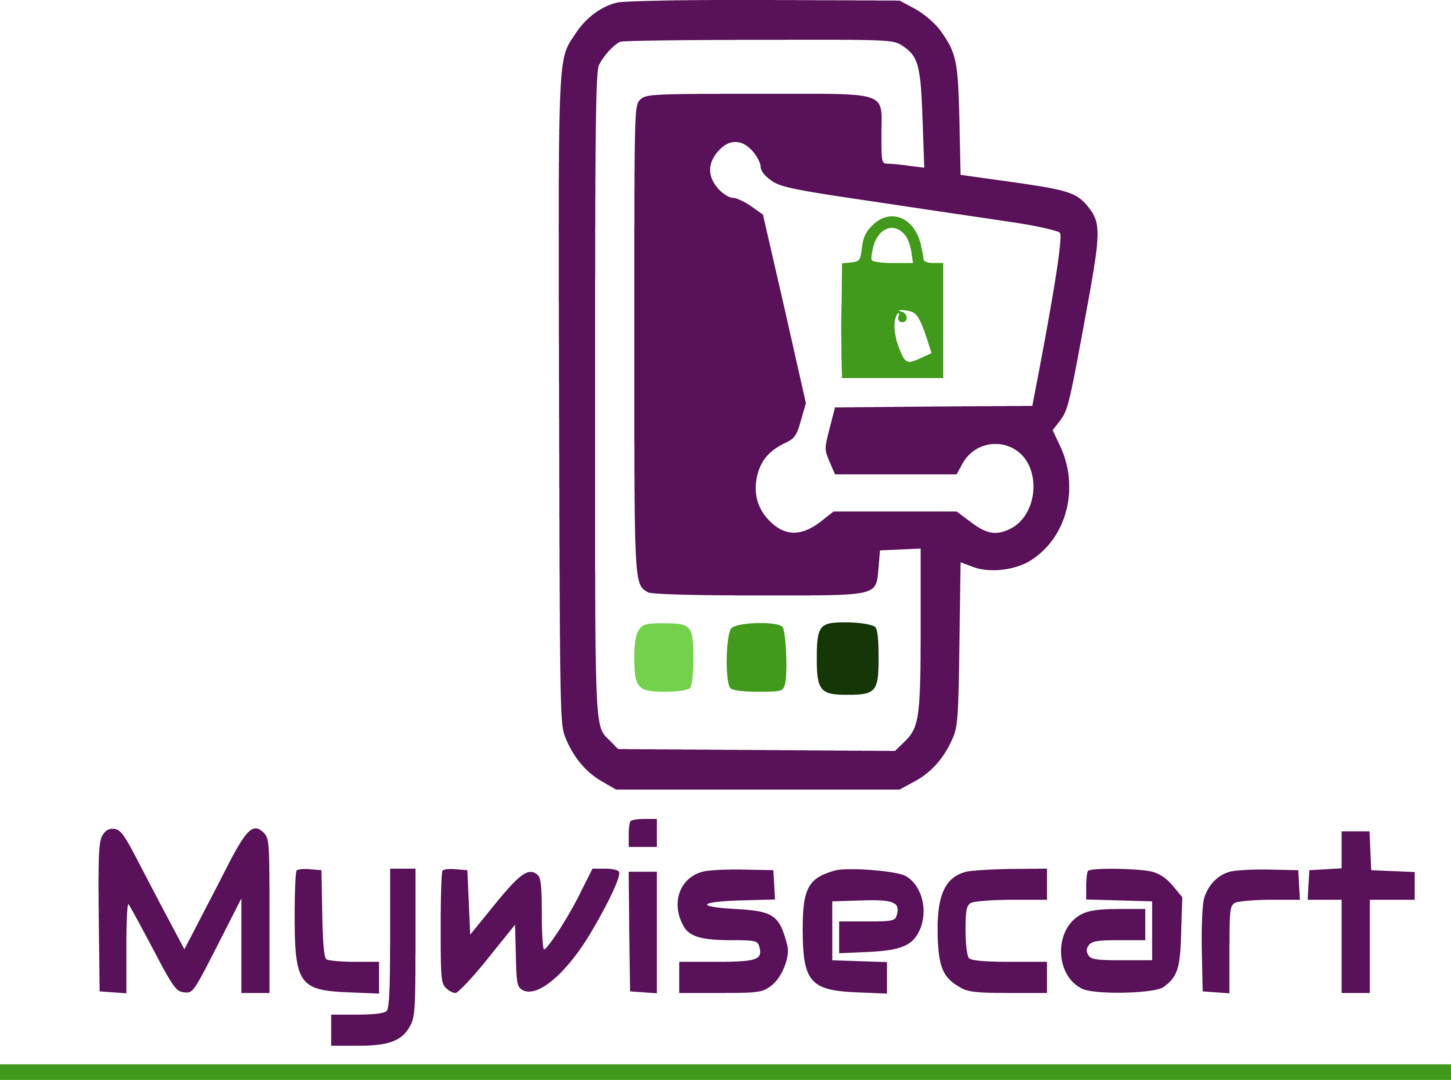 Mywisecart- Your Wisest Online Assistant